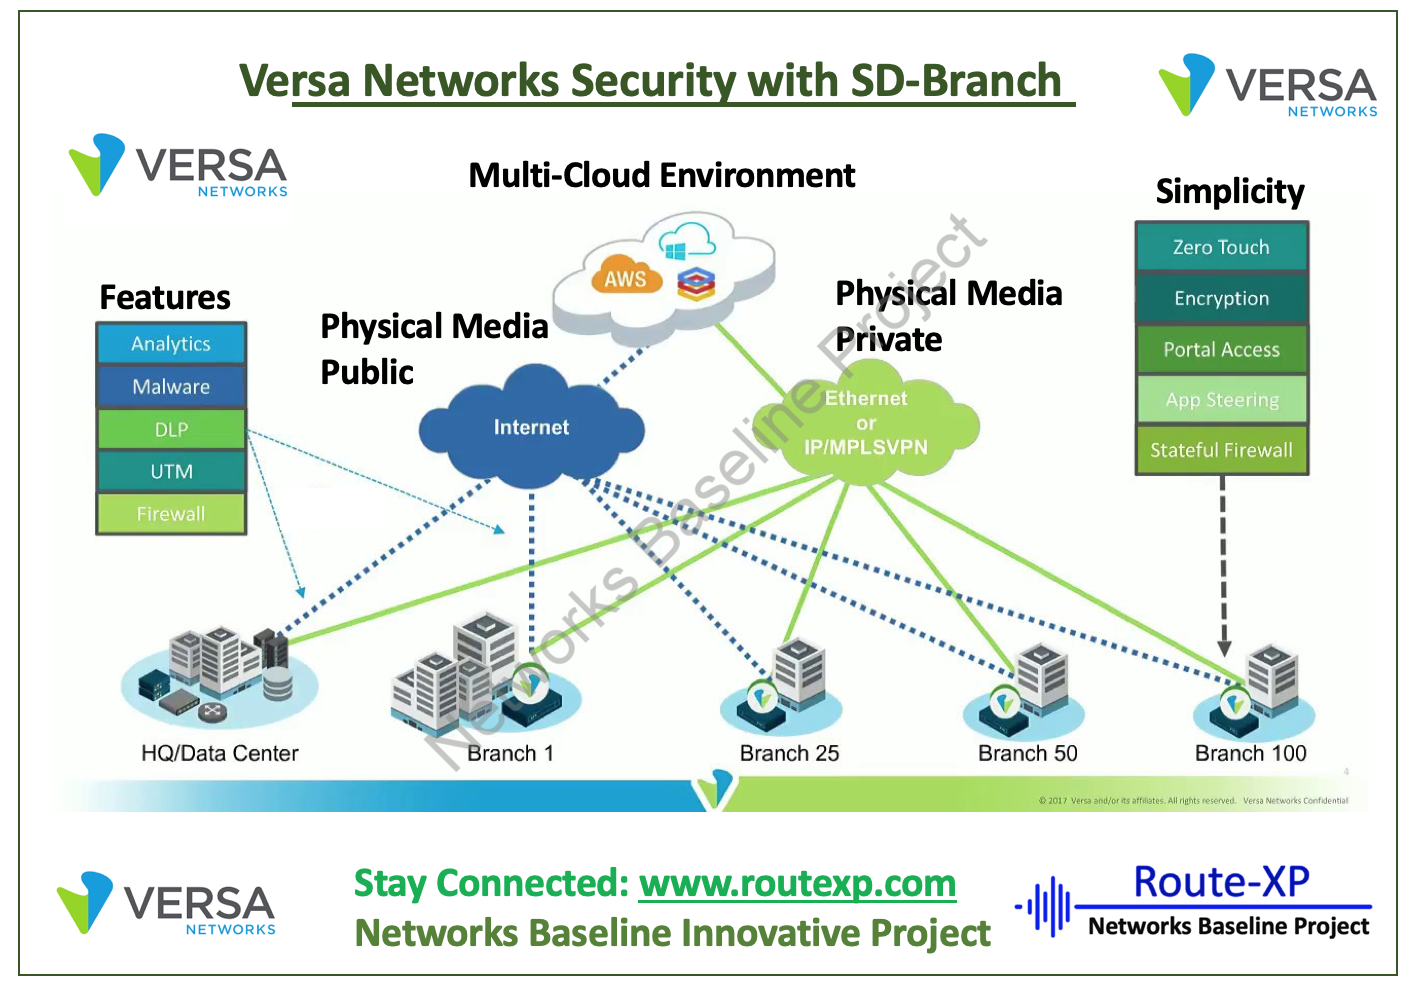 Introduction To Versa Networks Sd Branch With Security Features Route Xp Private Network Services